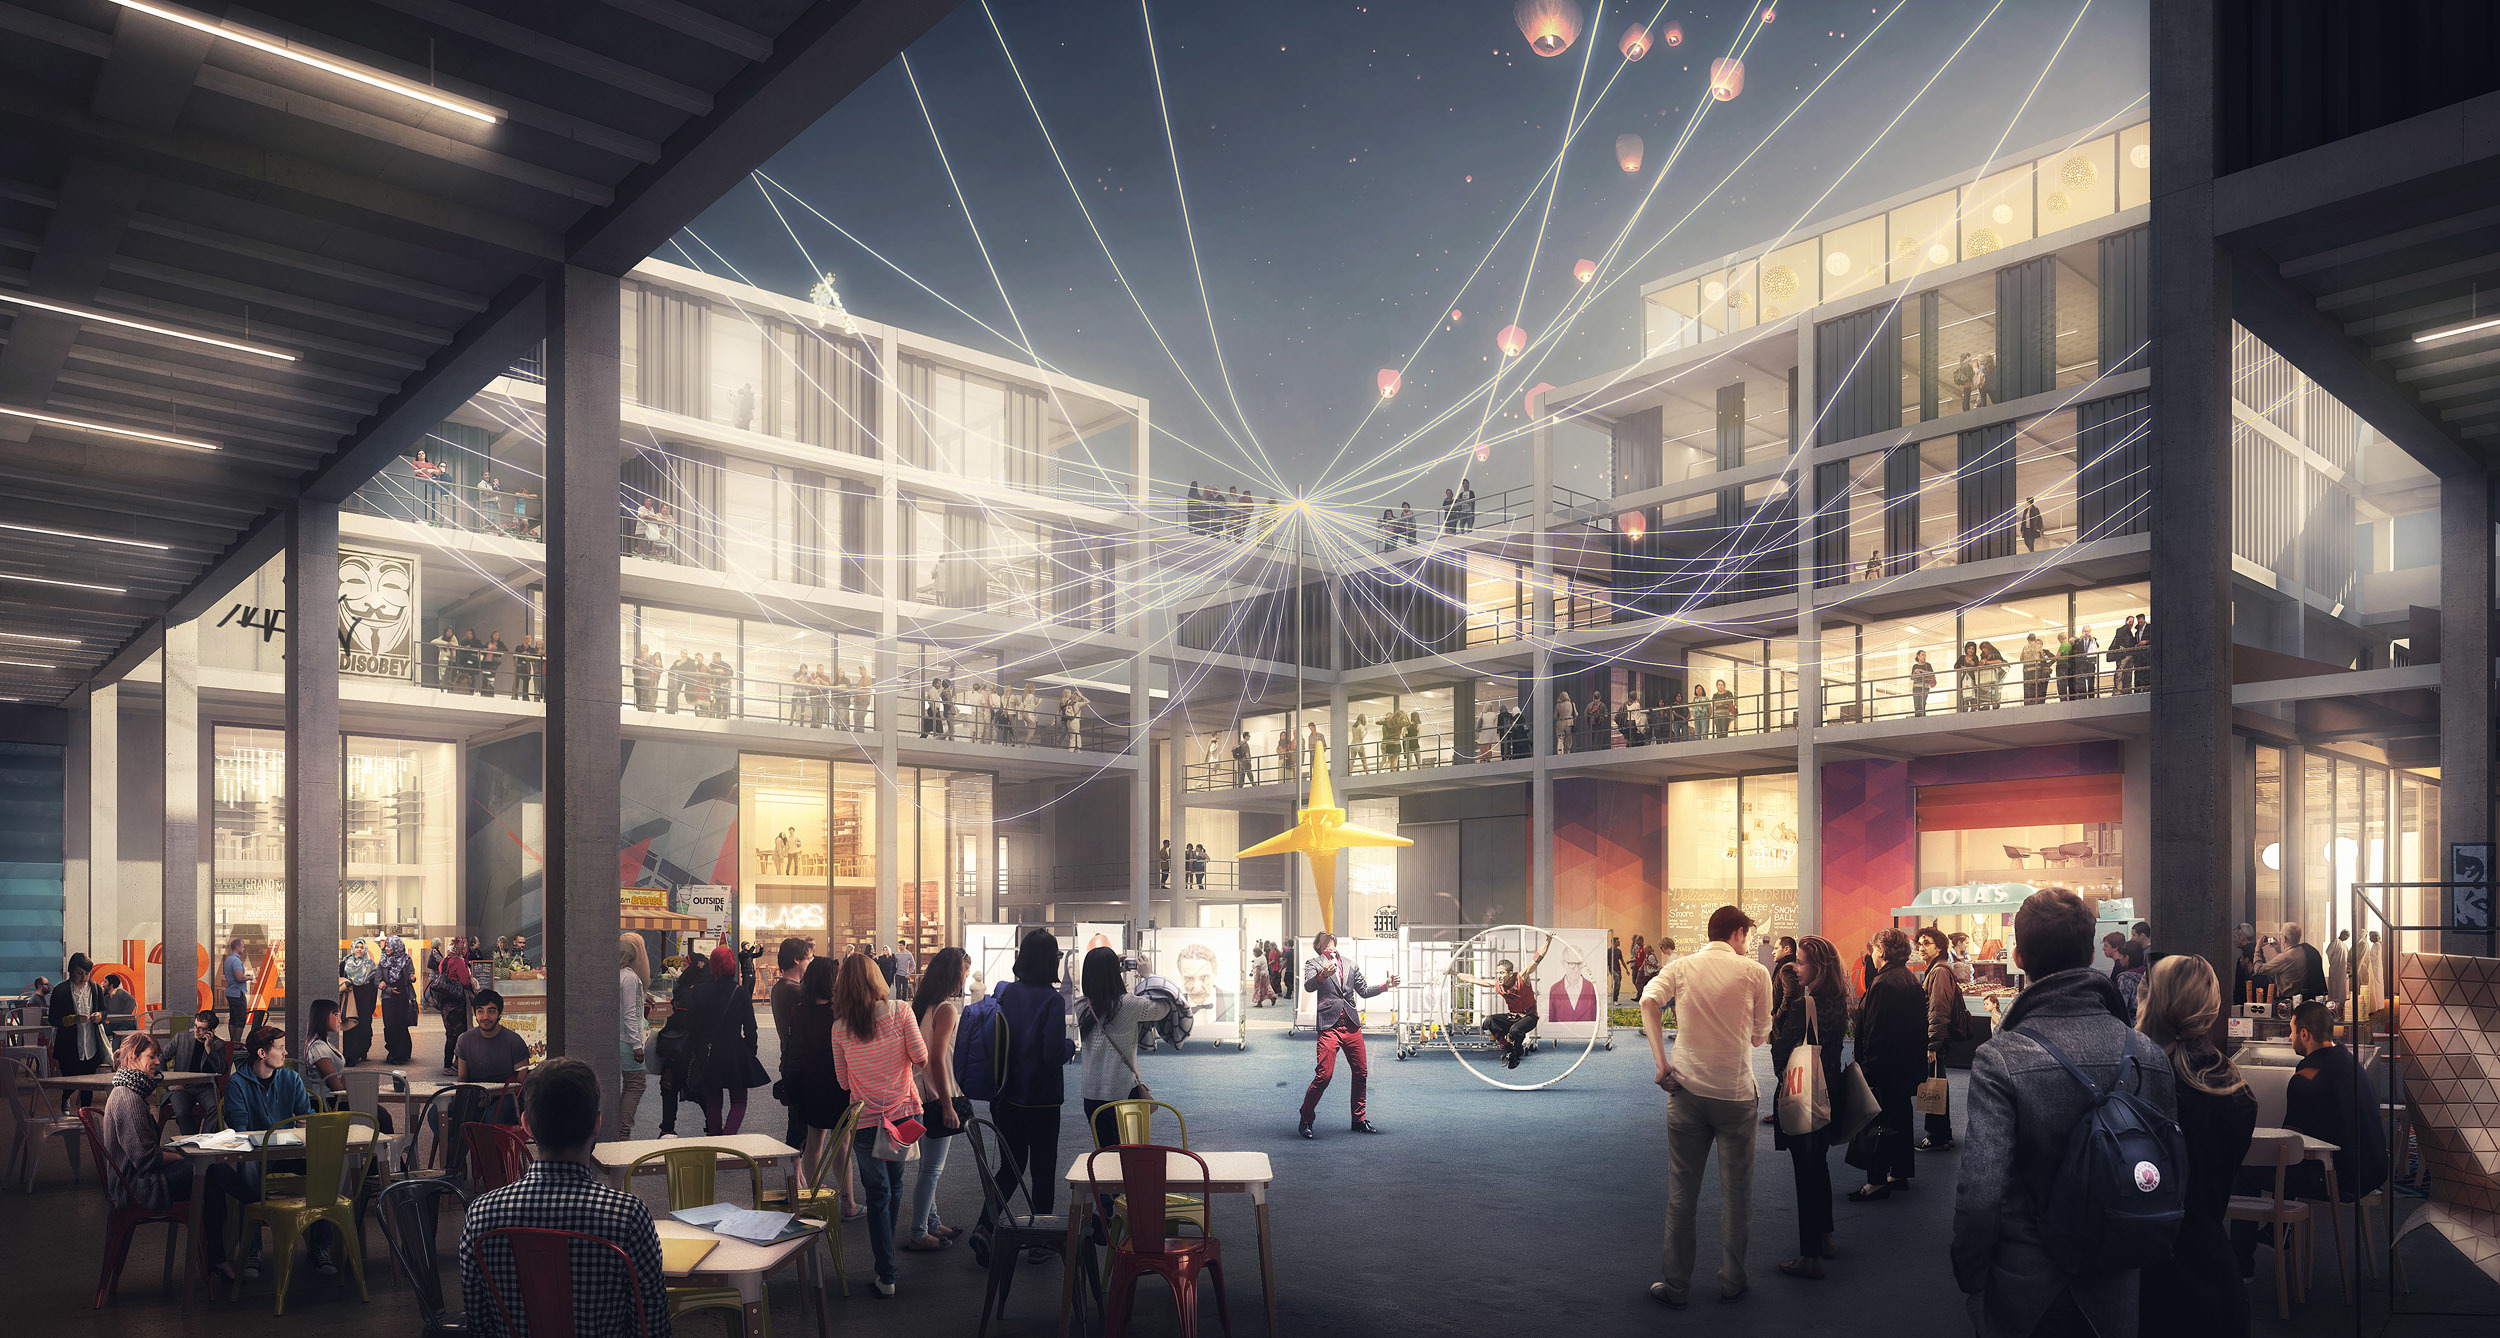 Dubai Design District (d3) has revealed development plans for a dedicated Creative Community which will cover around 1,000,000 square feet within d3.